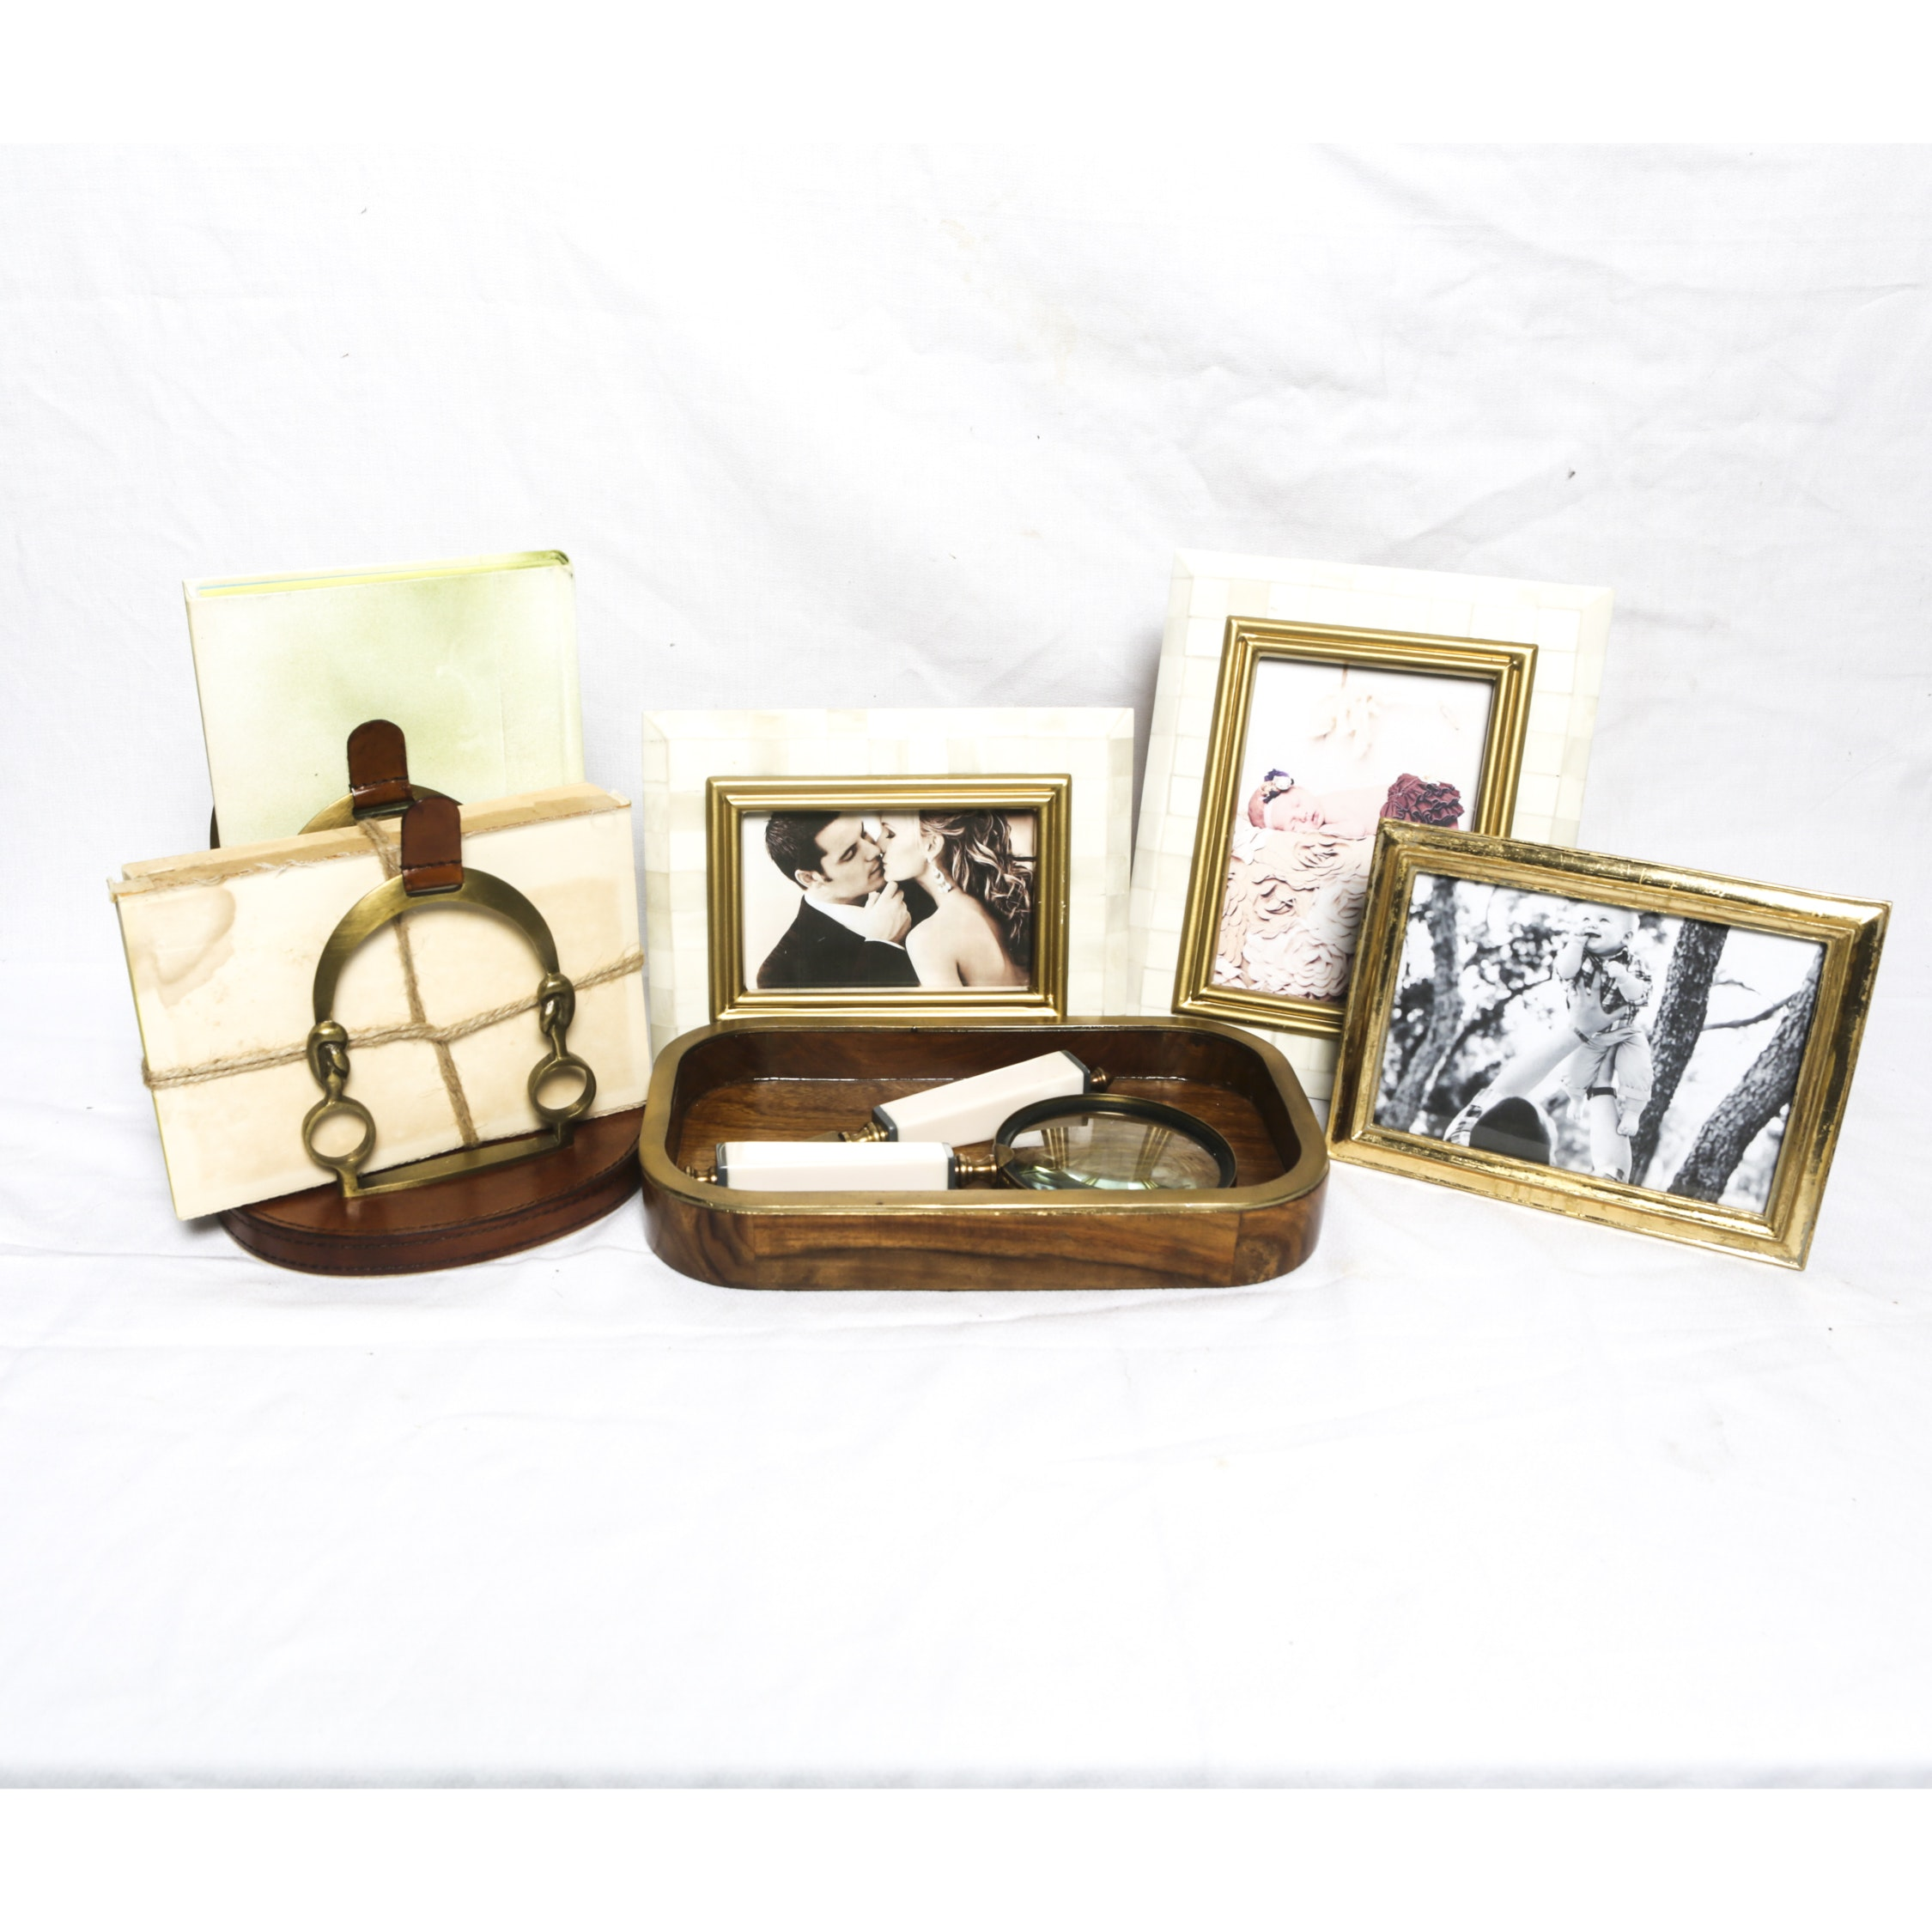 Equestrian Motif Letter Holder with Metallic Picture Frames and Wooden Tray